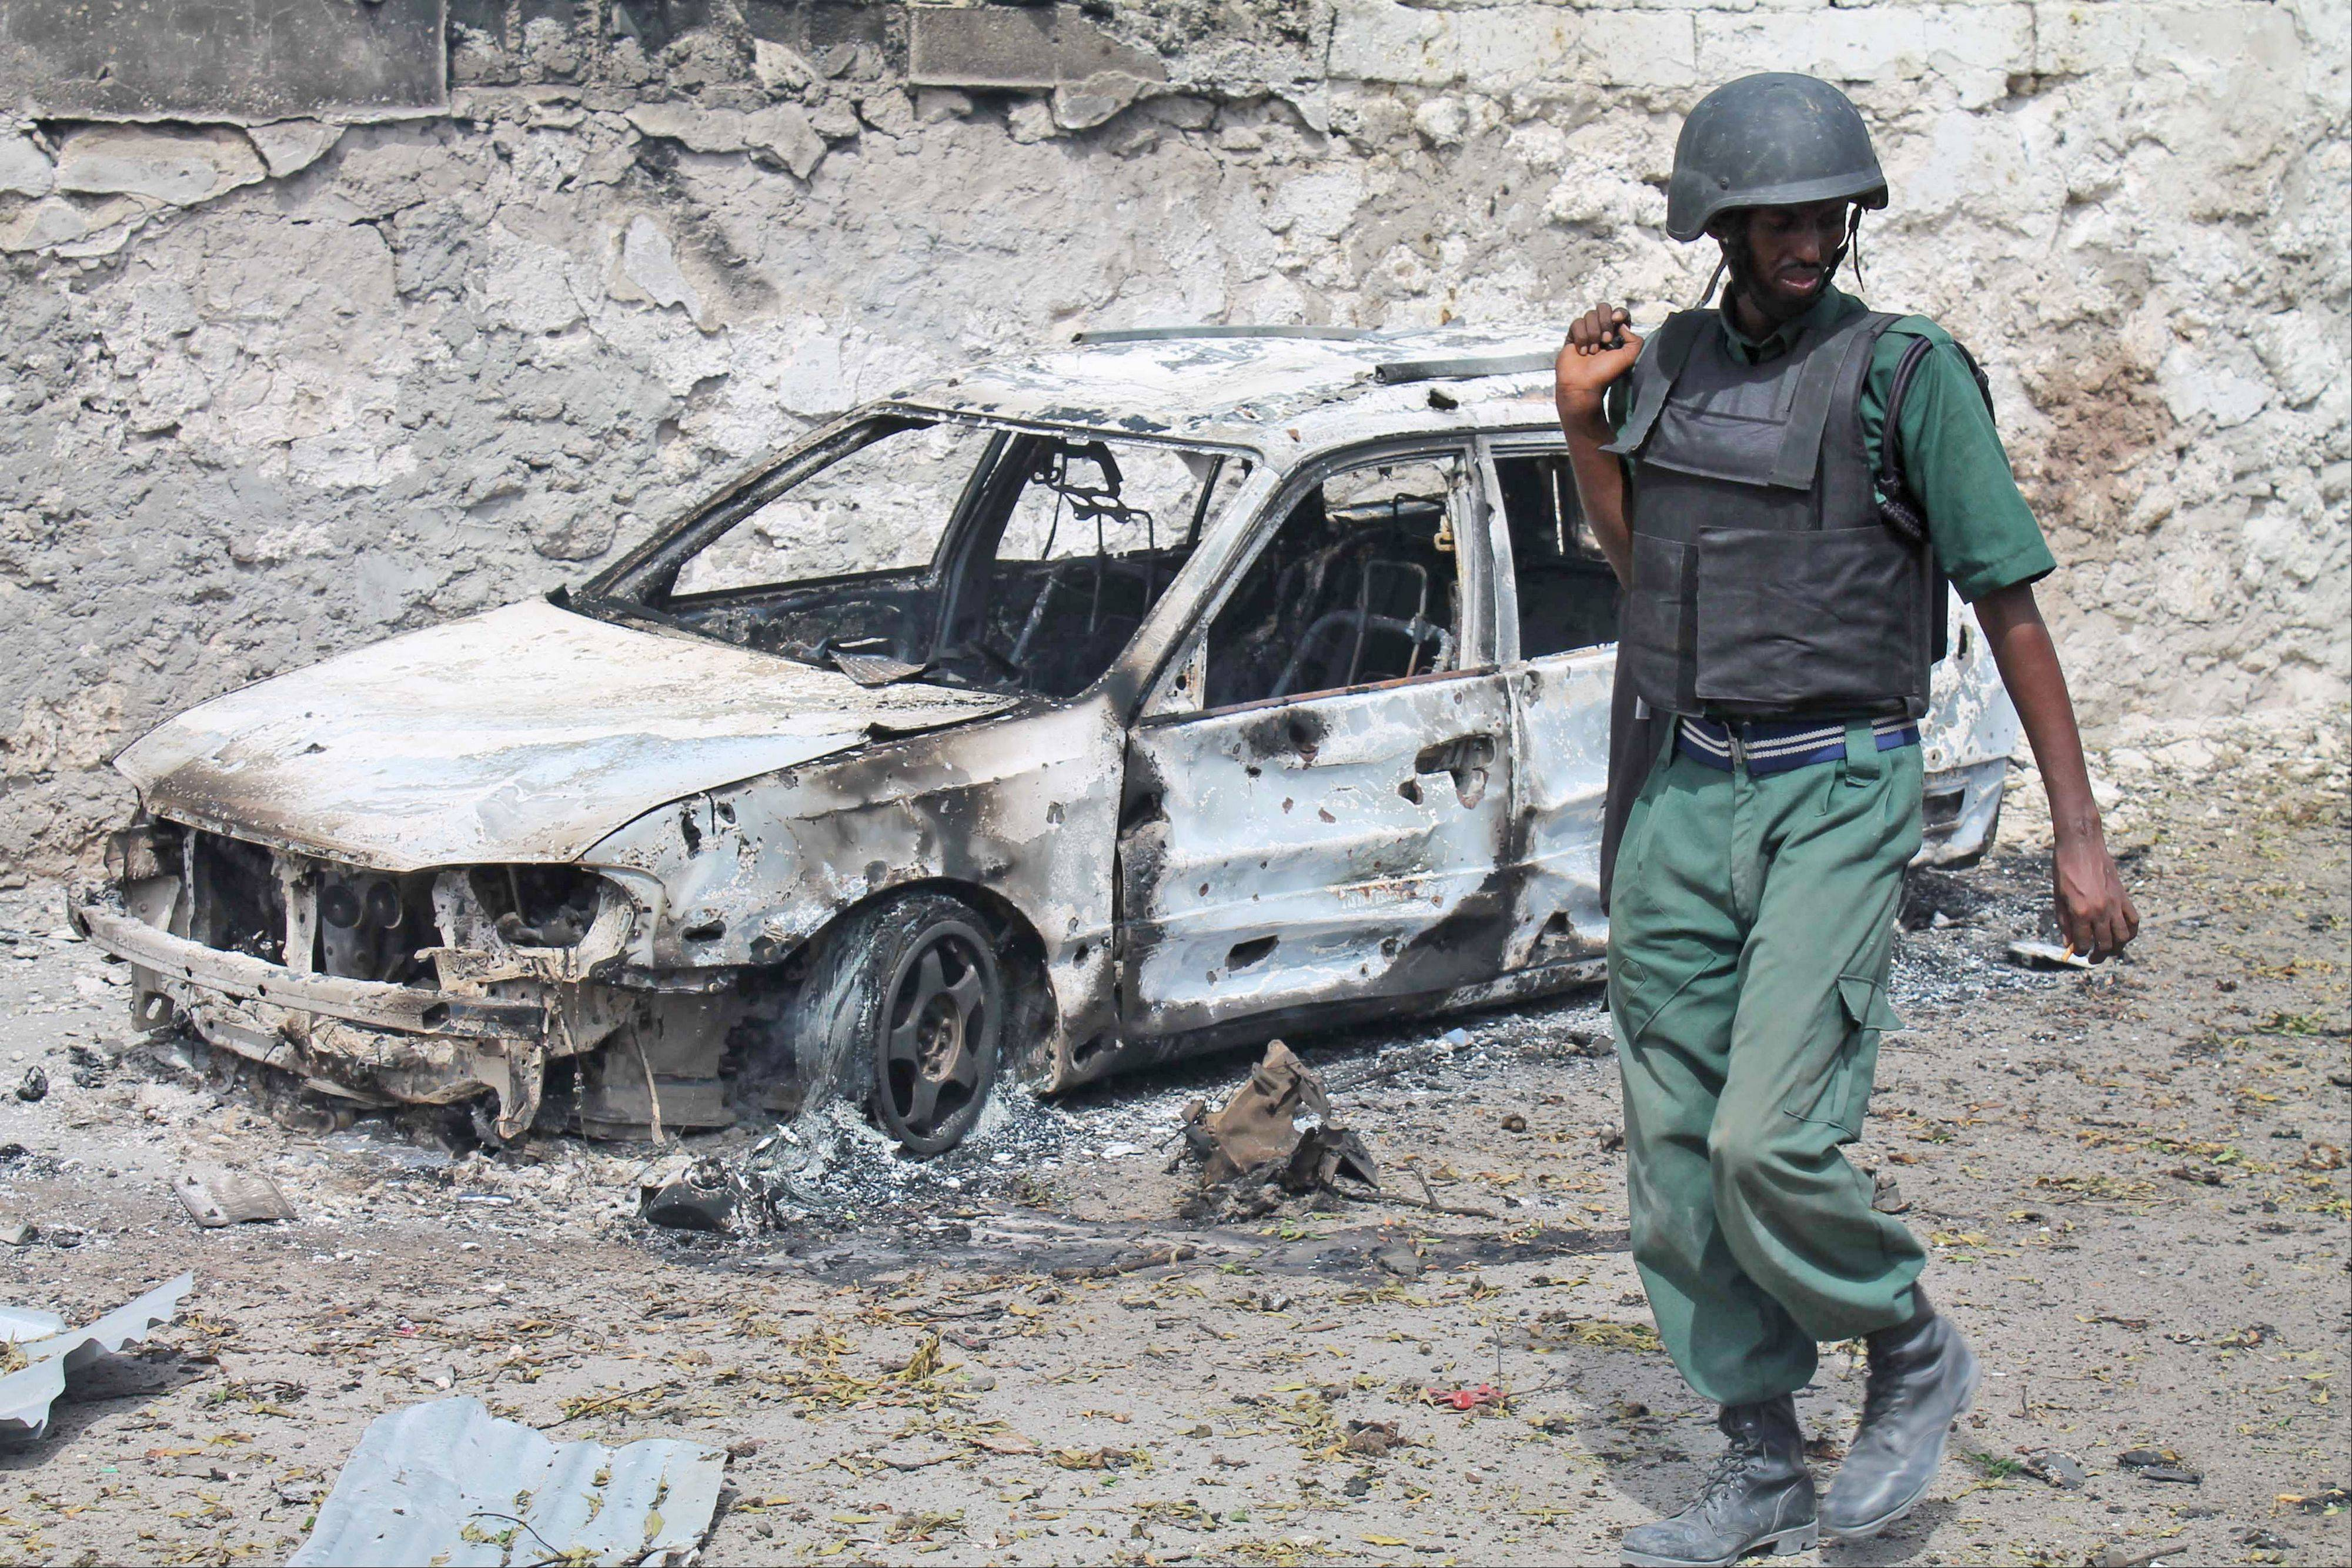 A Somali soldier walks near a destroyed car near the entrance of Mogadishu�s court complex in Somalia, Sunday. Militants launched a serious and sustained assault on Mogadishu�s main court complex Sunday, detonating at least two blasts, taking an unknown number of hostages and exchanging extended volleys of gunfire with government security forces, witnesses said.